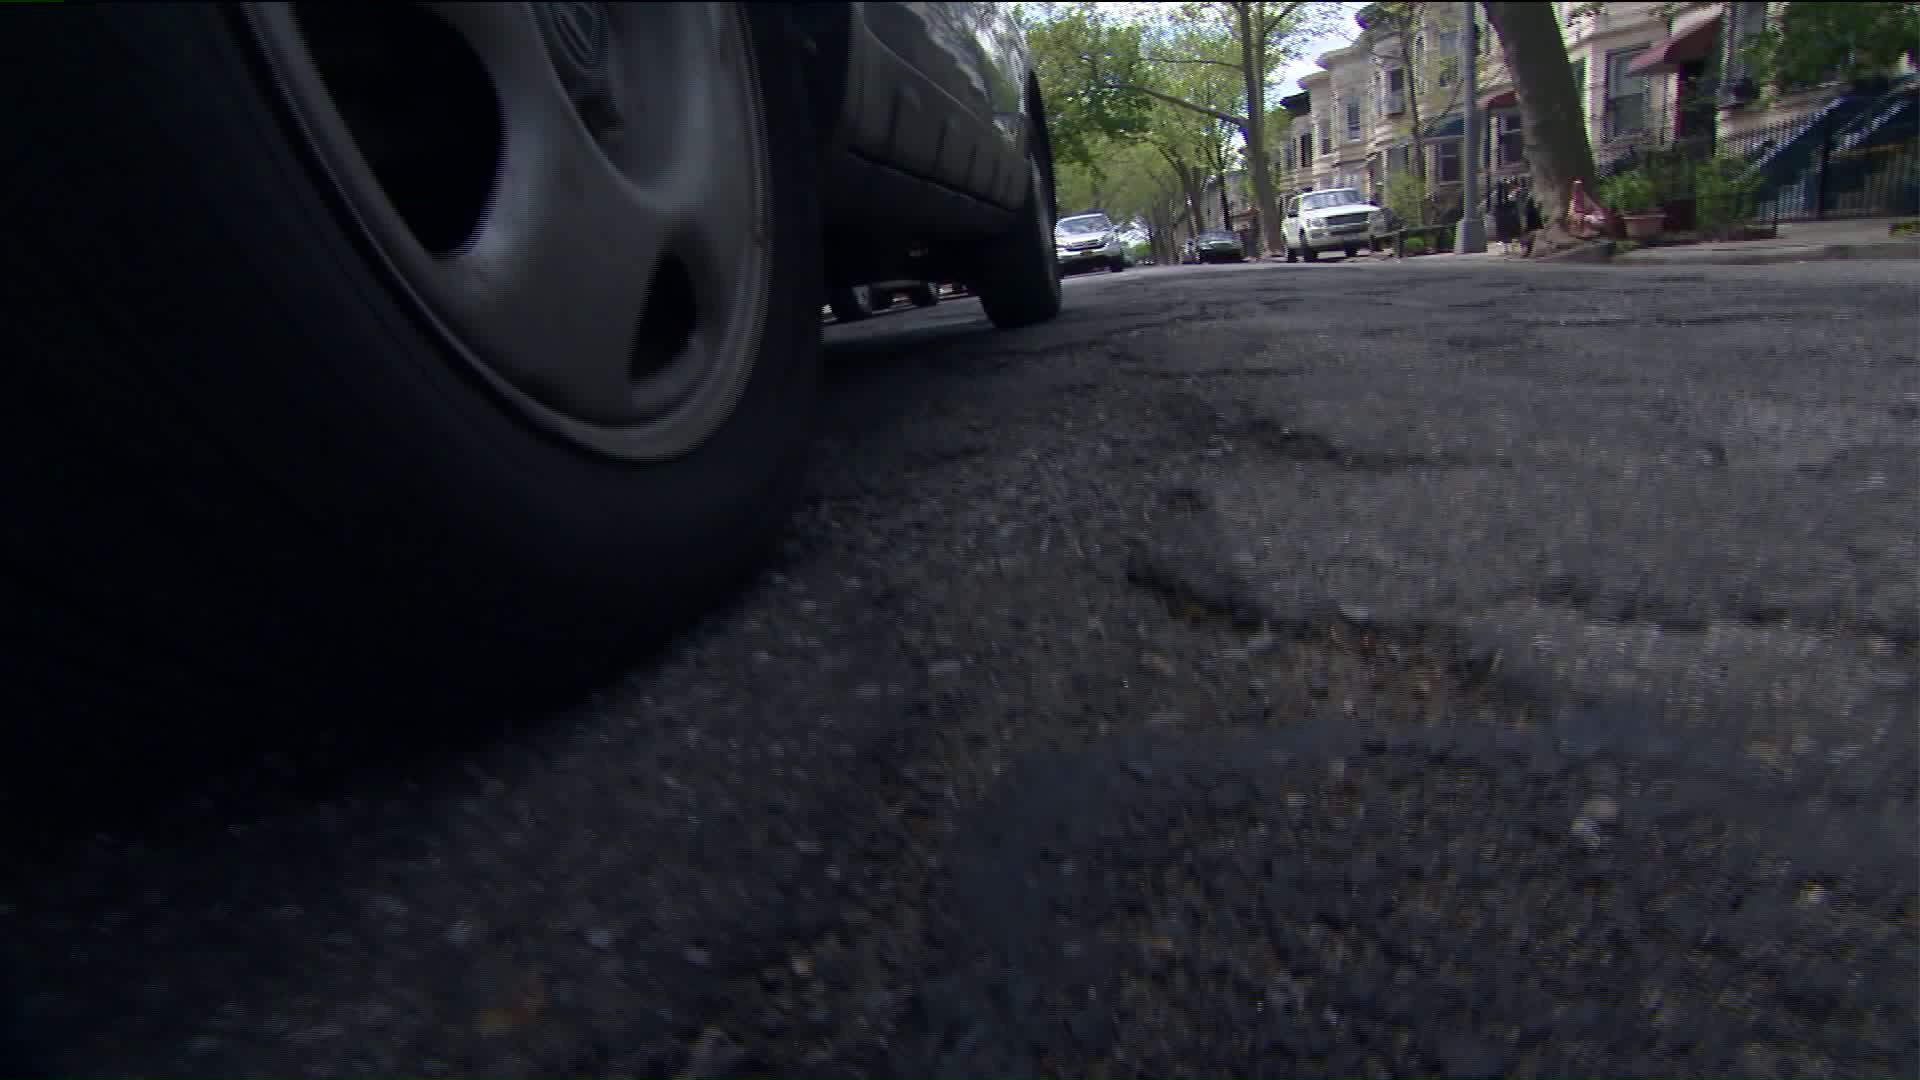 Pothole on Brooklyn street